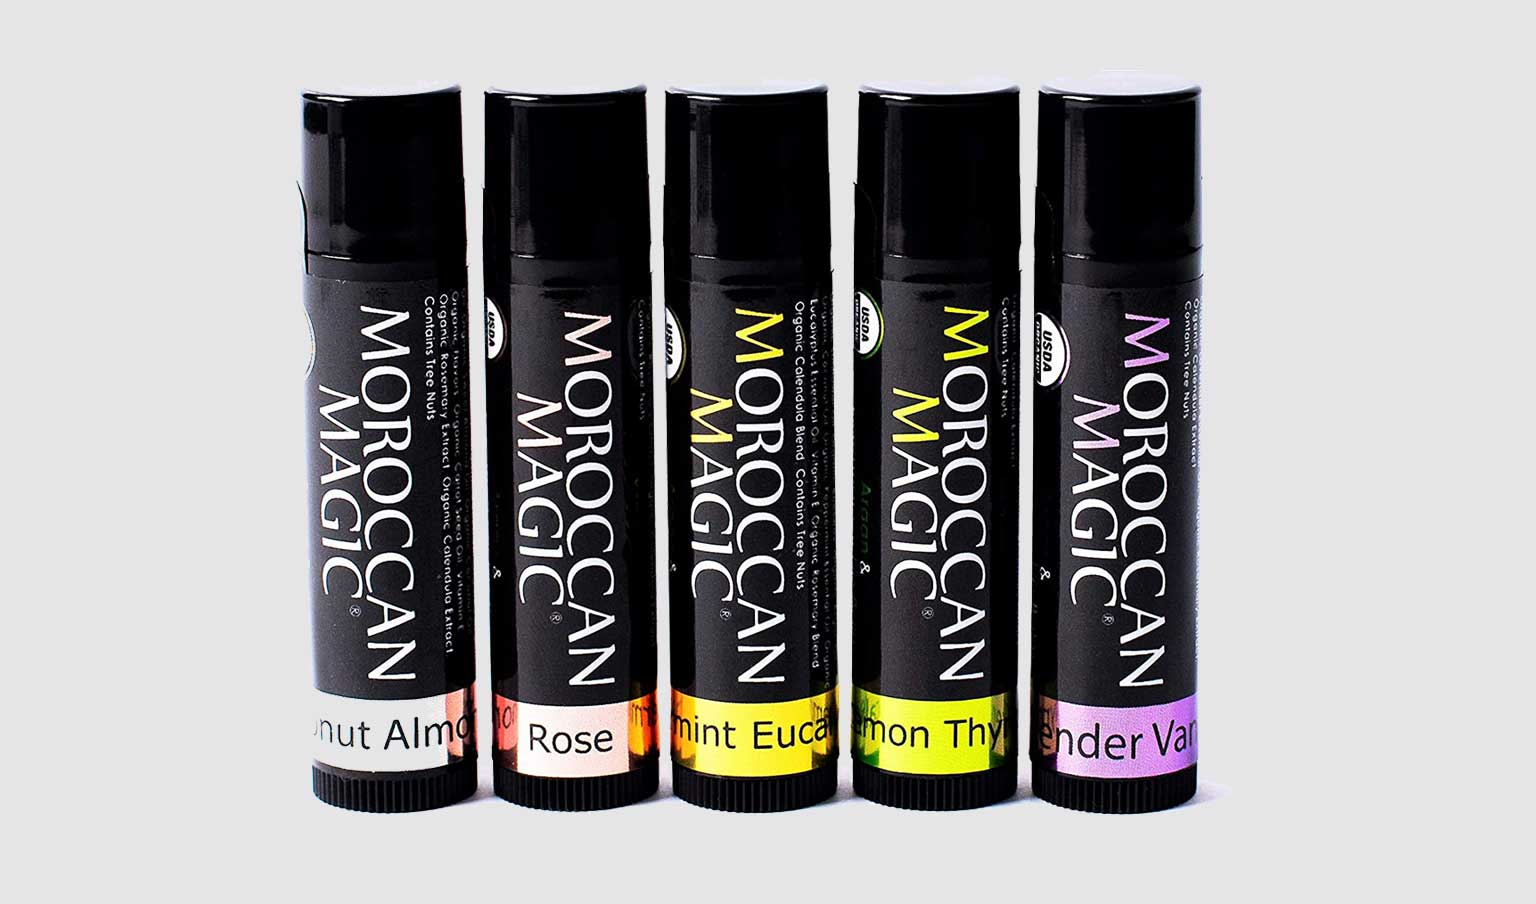 5 varieties of Moroccan Magic lip balm on a light grey background